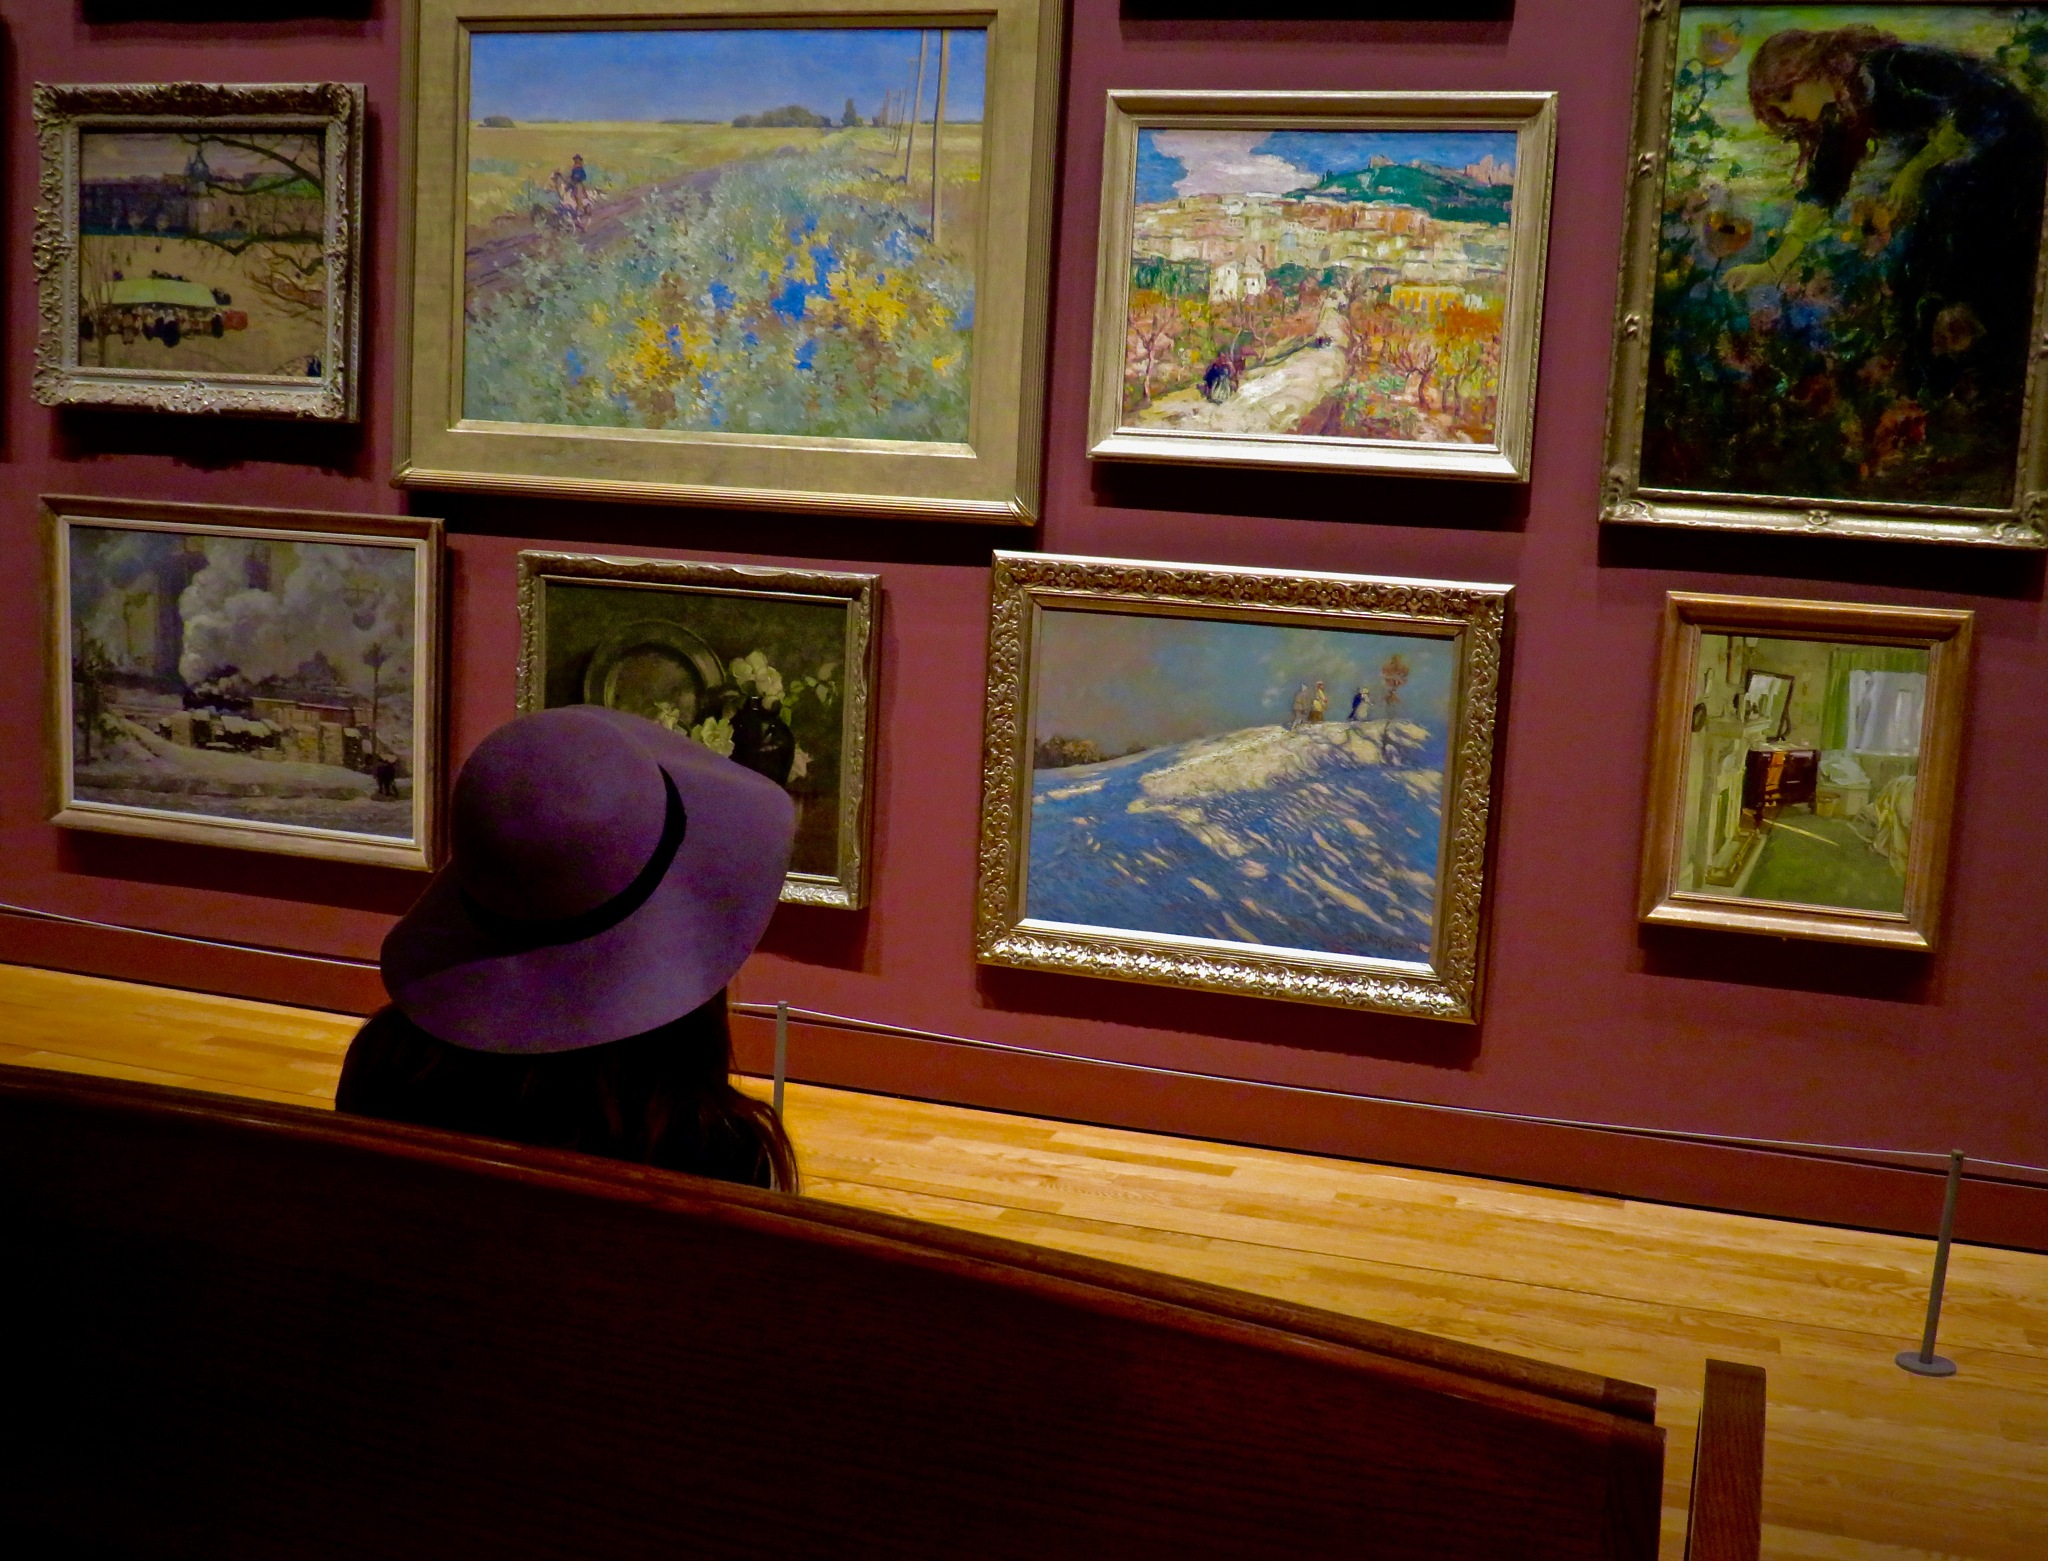 admiring the different scenes n points of artistic view by David Devion